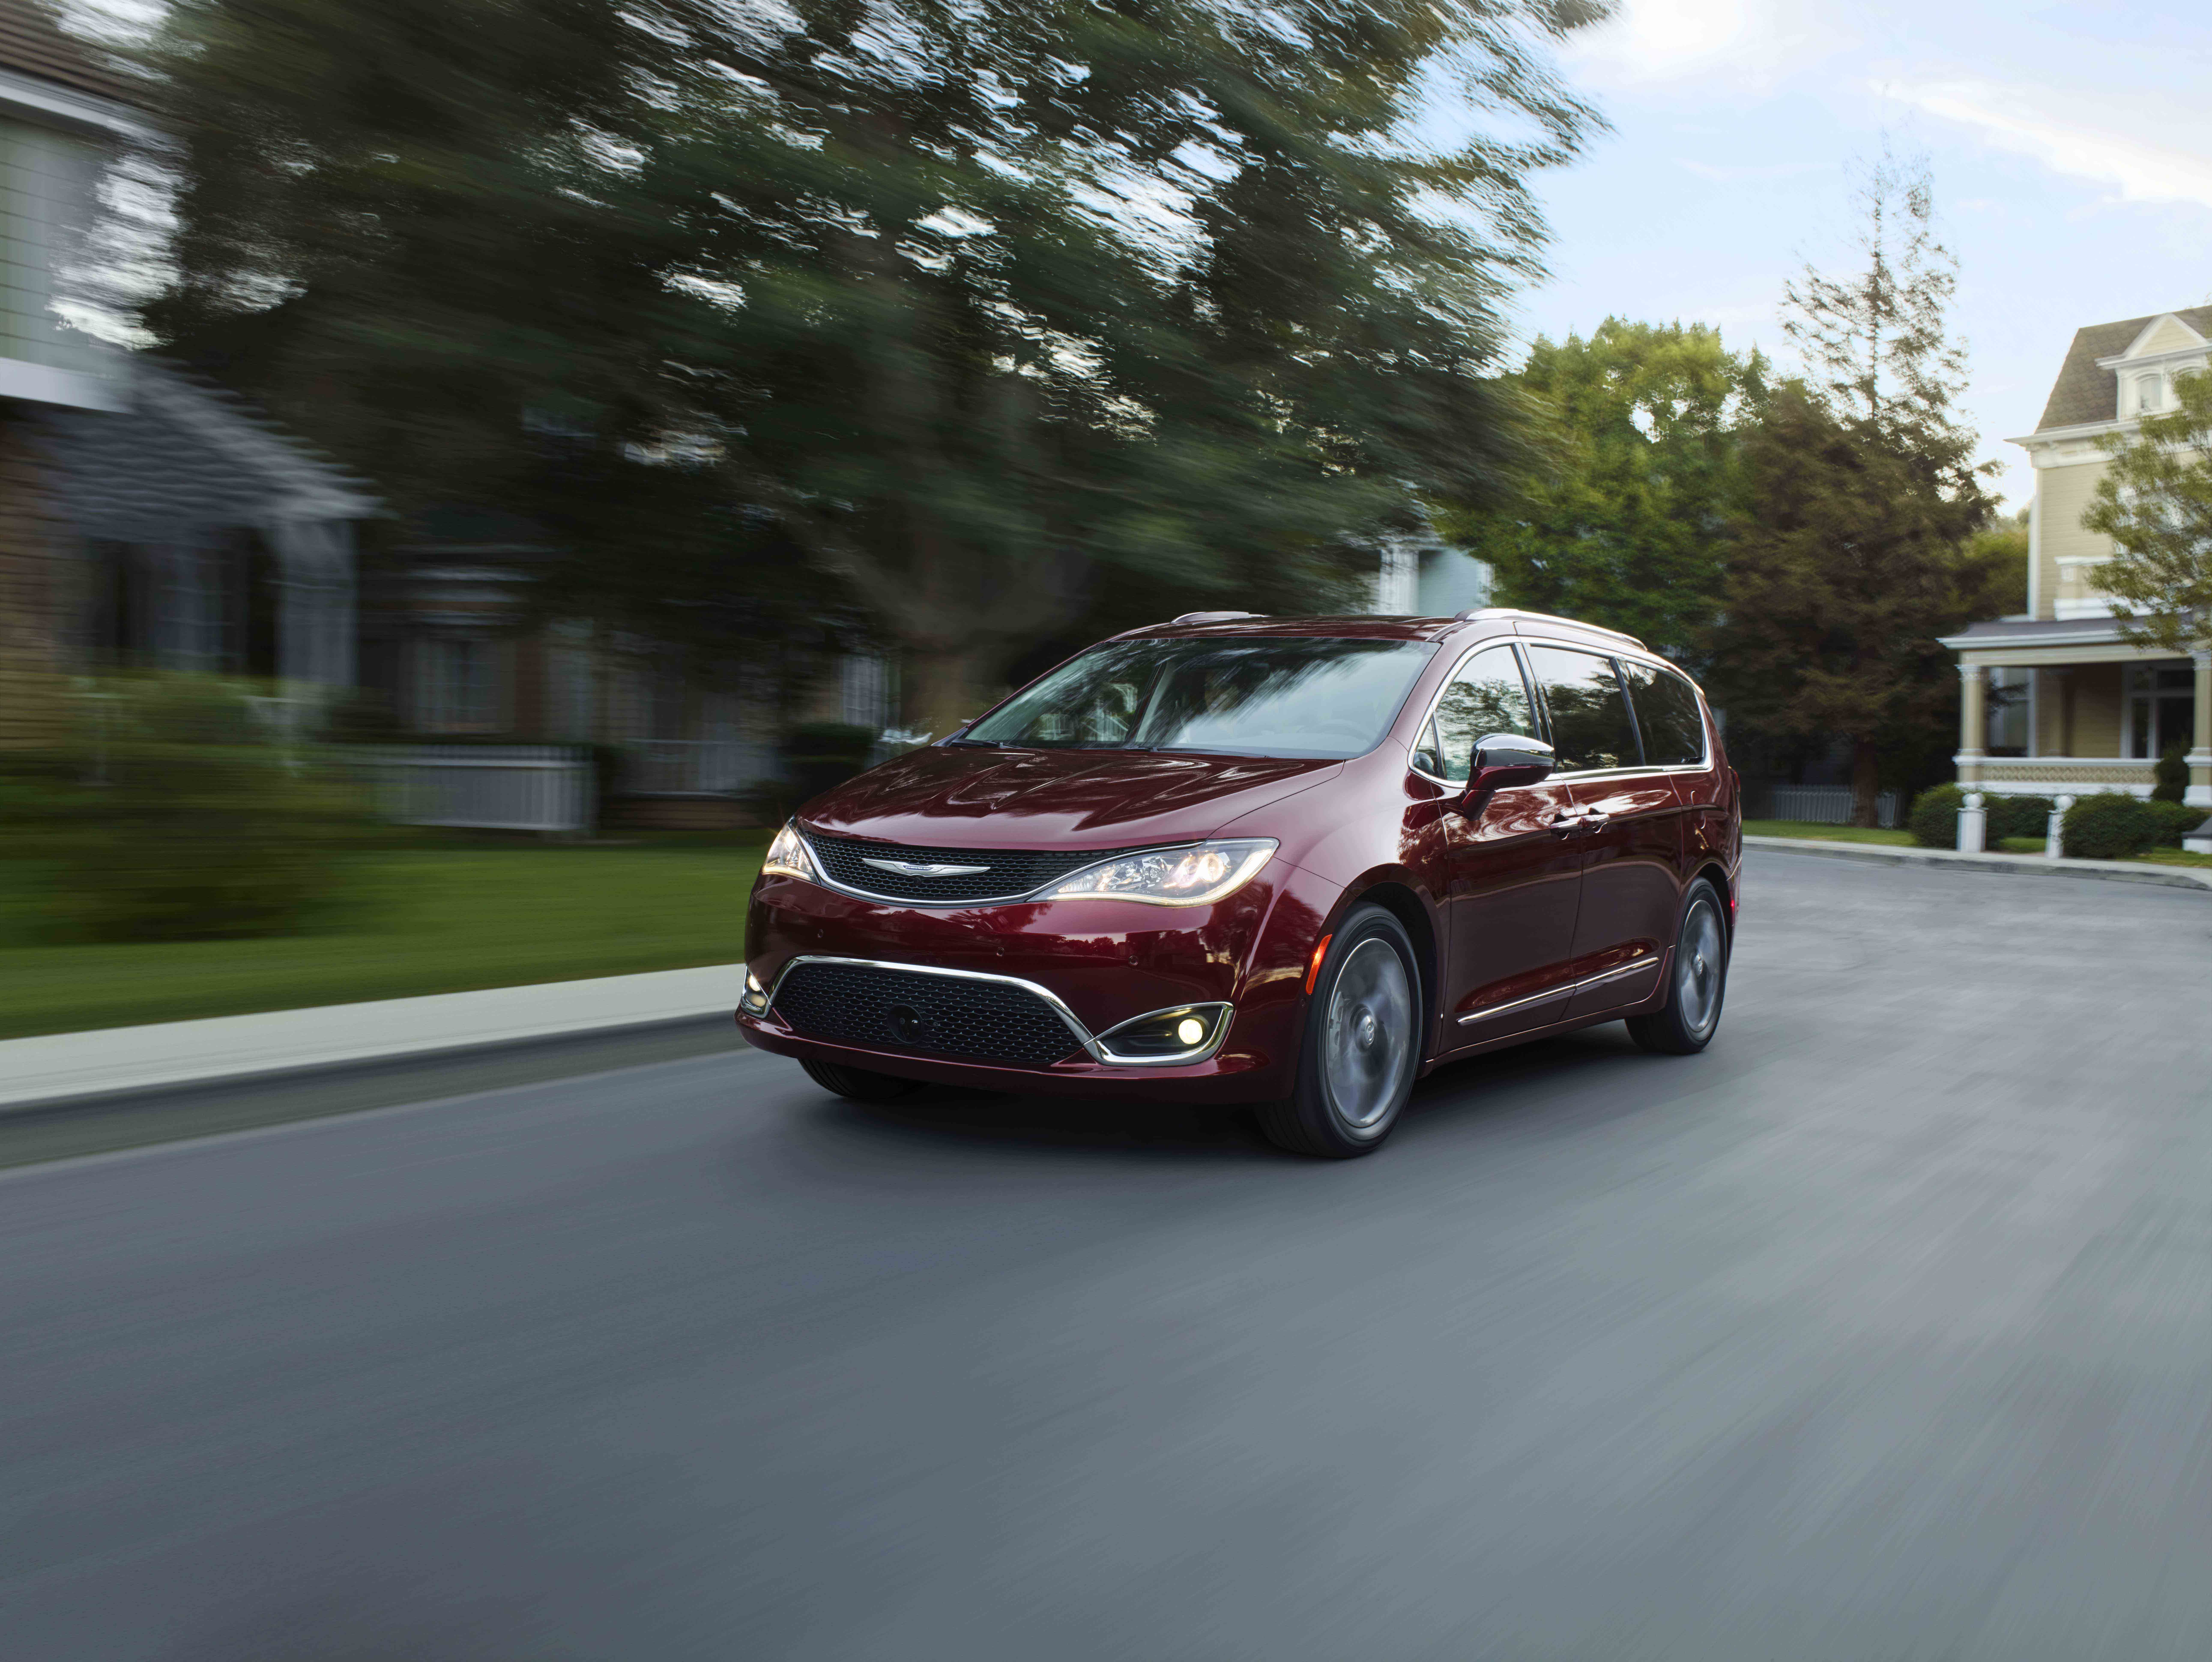 Chryslers available in Rockford, IL at Anderson DCJR